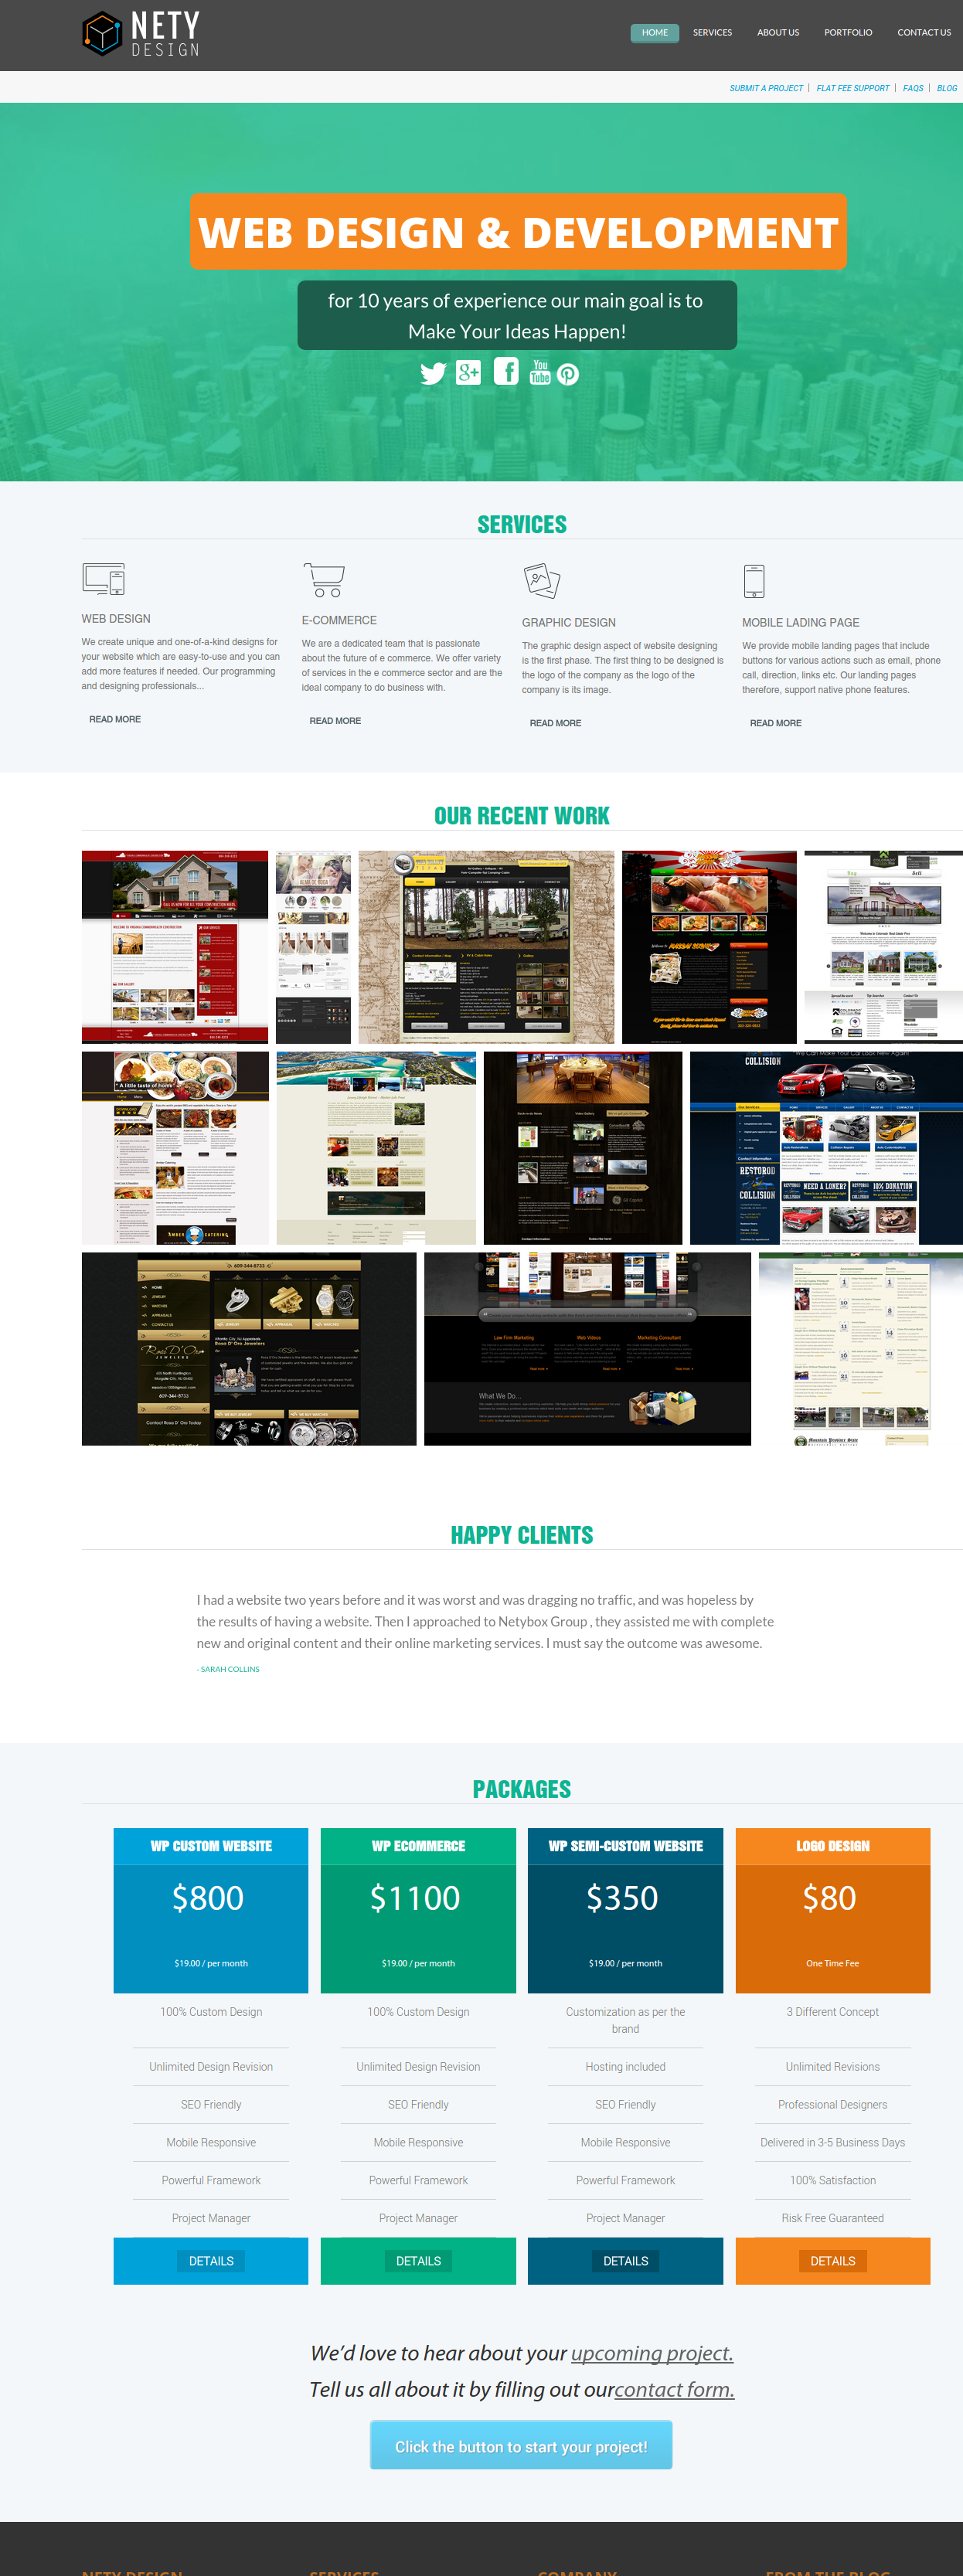 netydesign website services